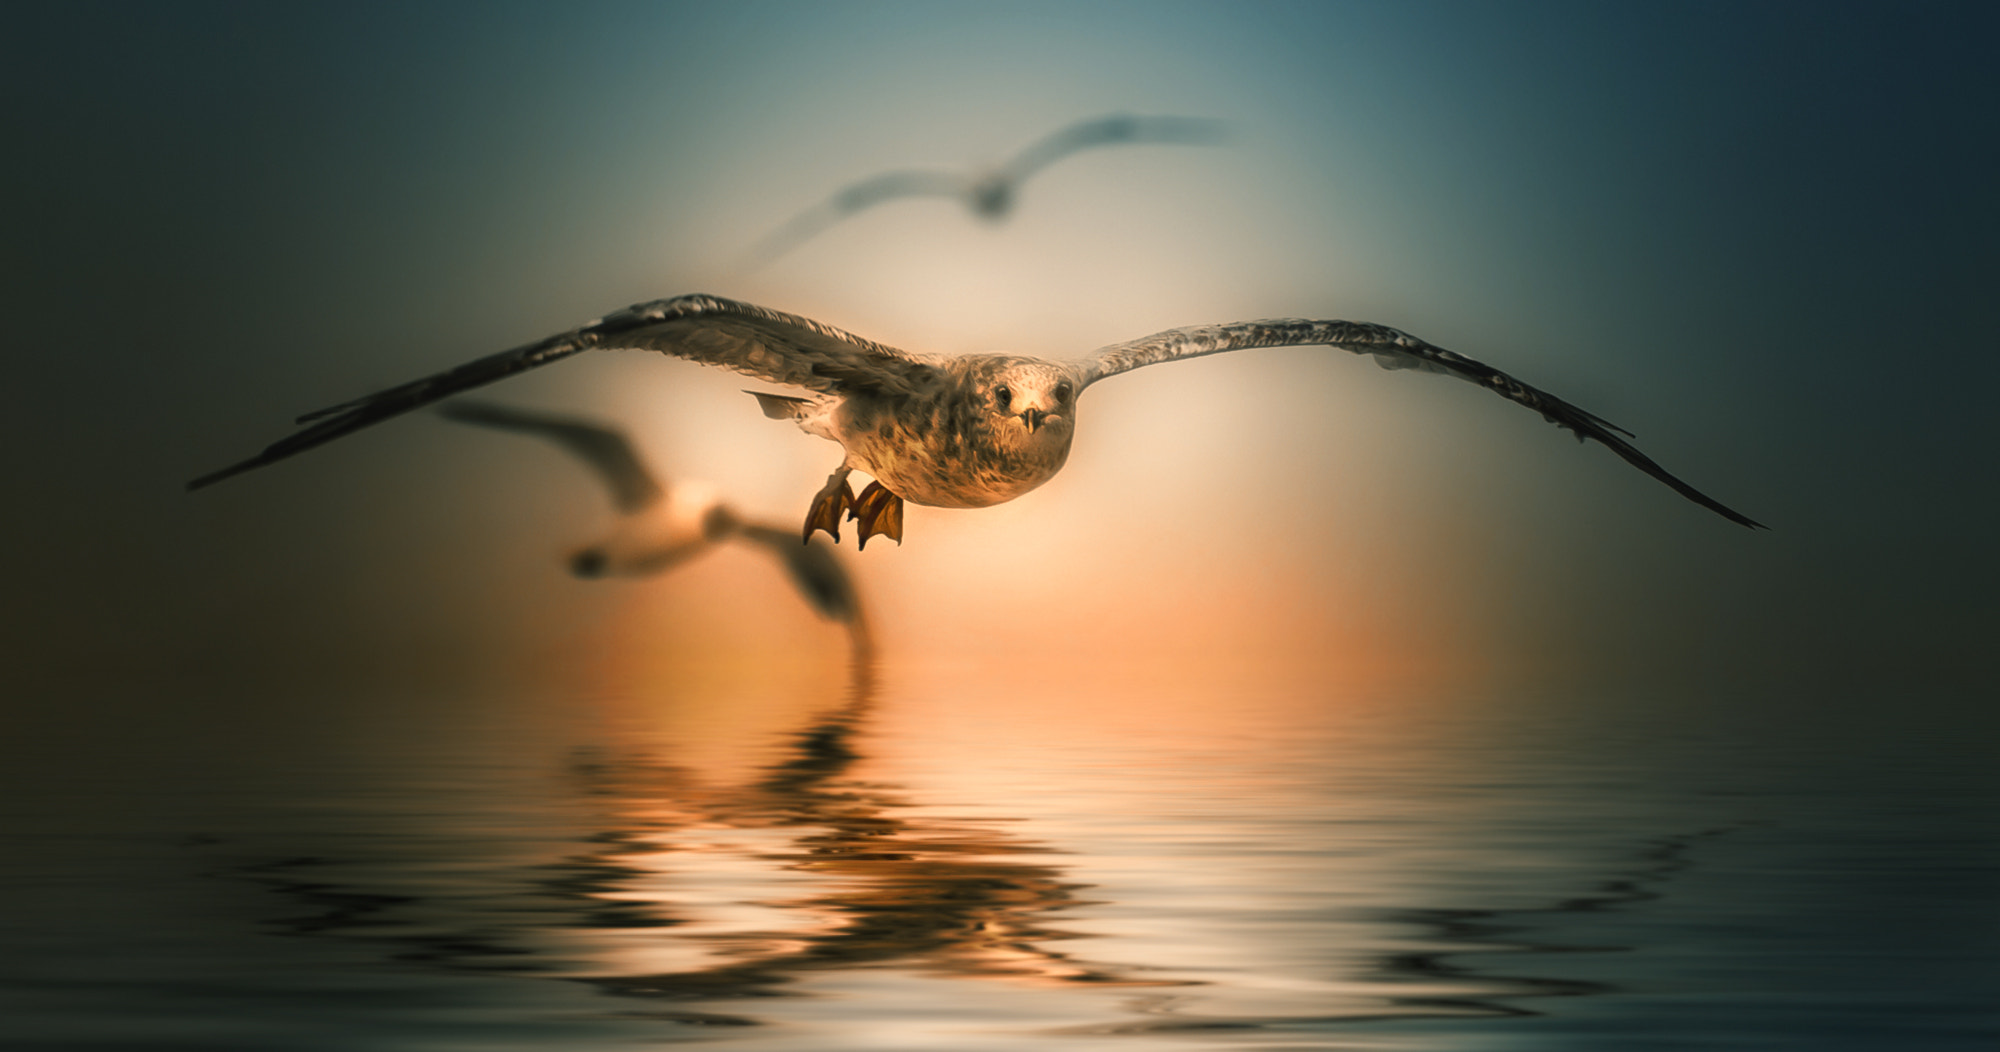 Photograph sailing by Detlef Knapp on 500px